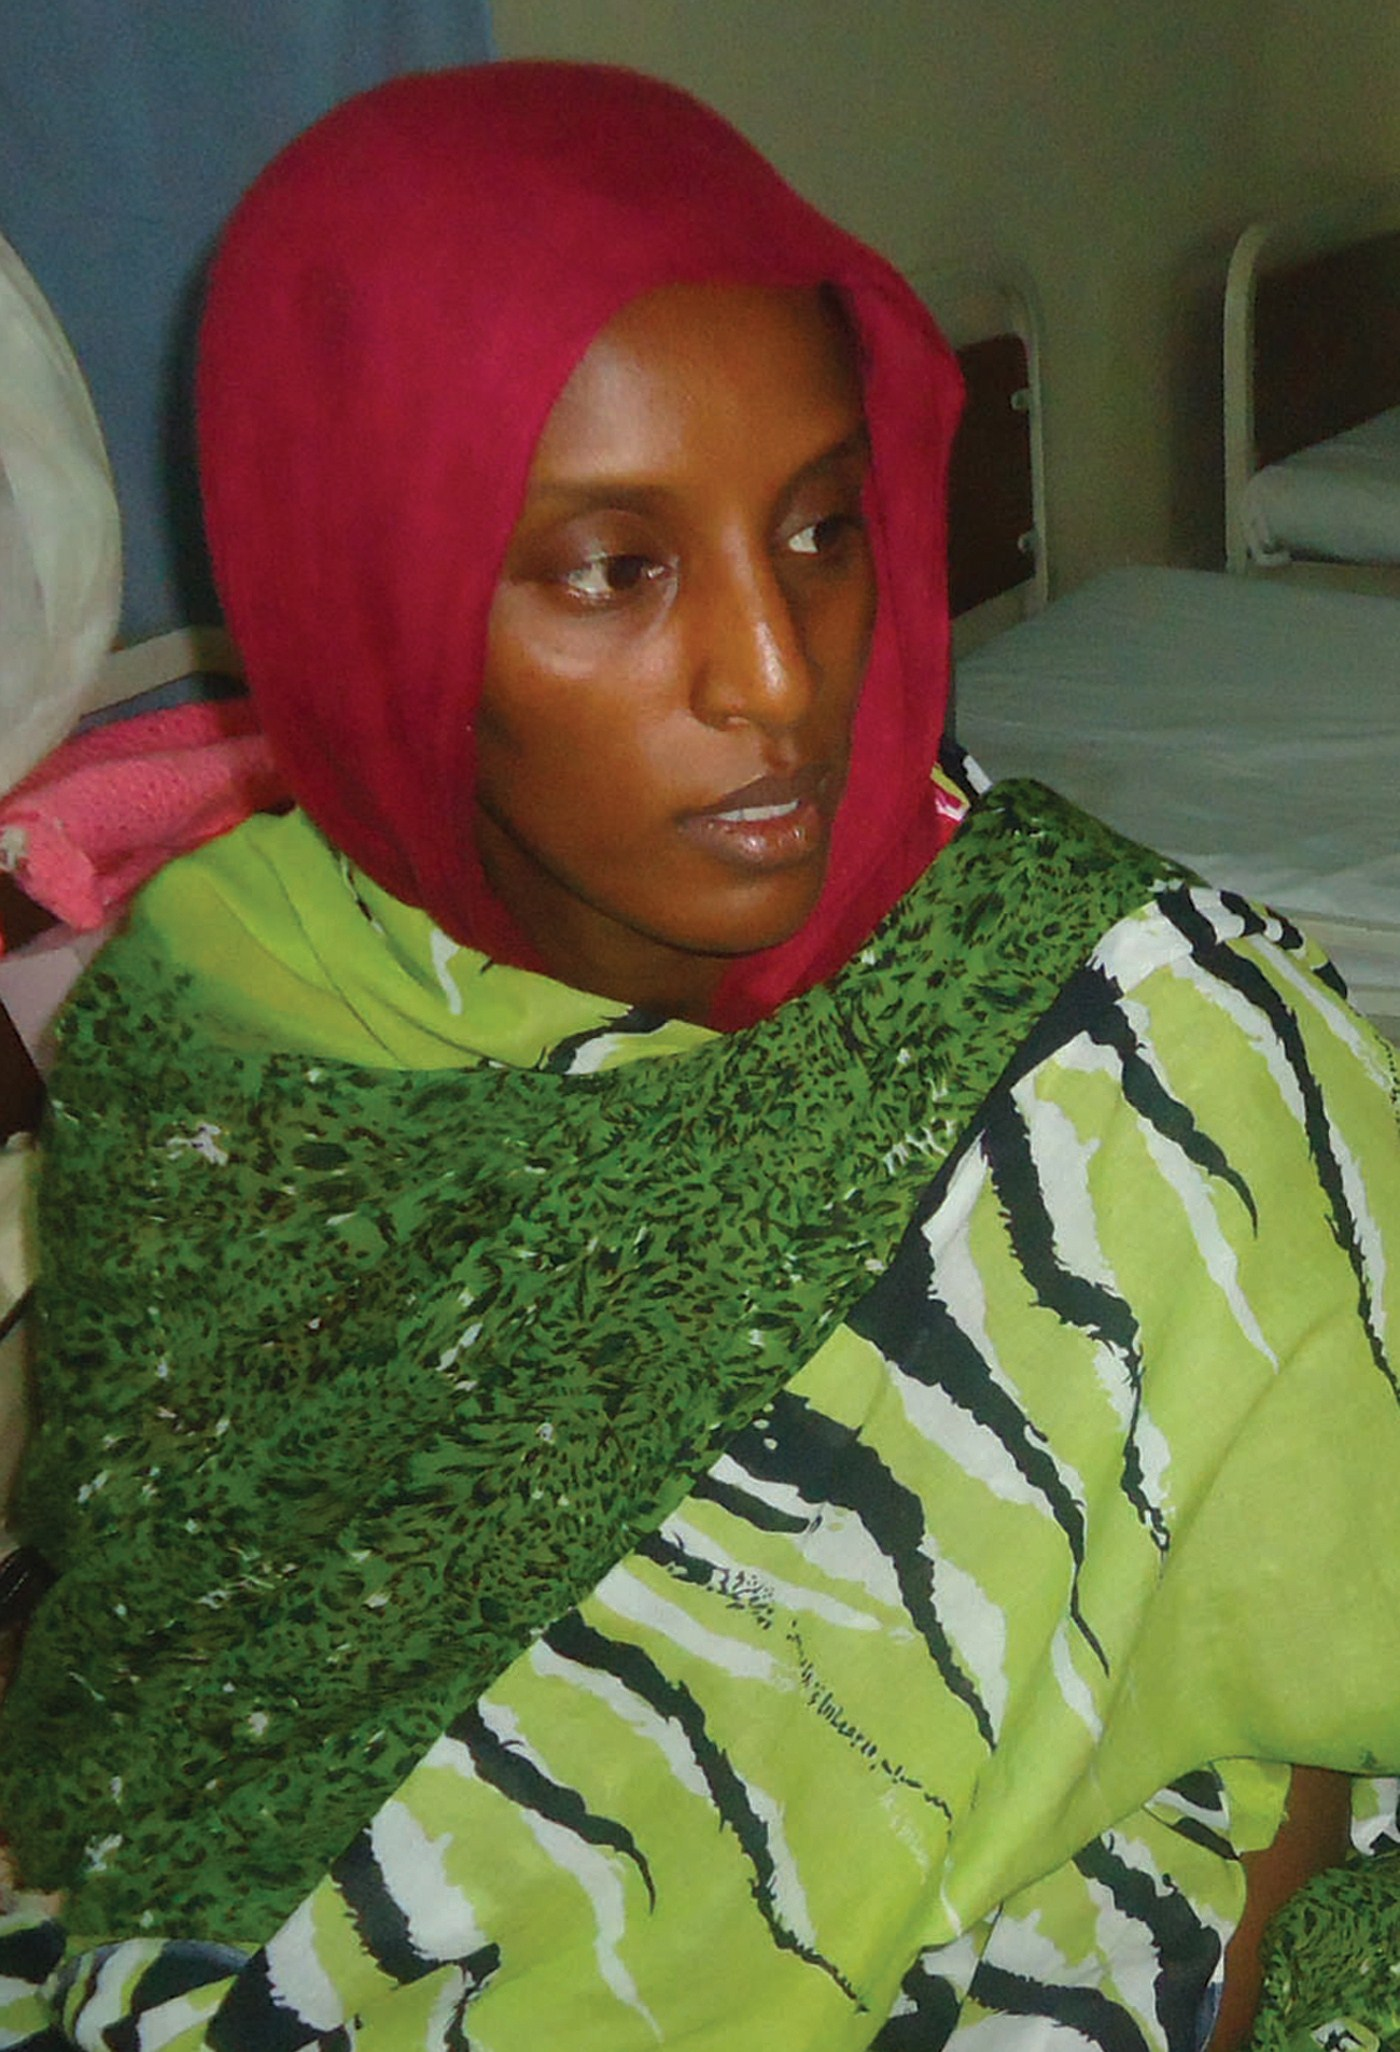 Meriam Yahia Ibrahim Ishag, a 27-year-old Christian Sudanese woman sentenced to hang for apostasy, sits in her cell a day after she gave birth to a baby girl at a women's prison in Khartoum's twin city of Omdurman